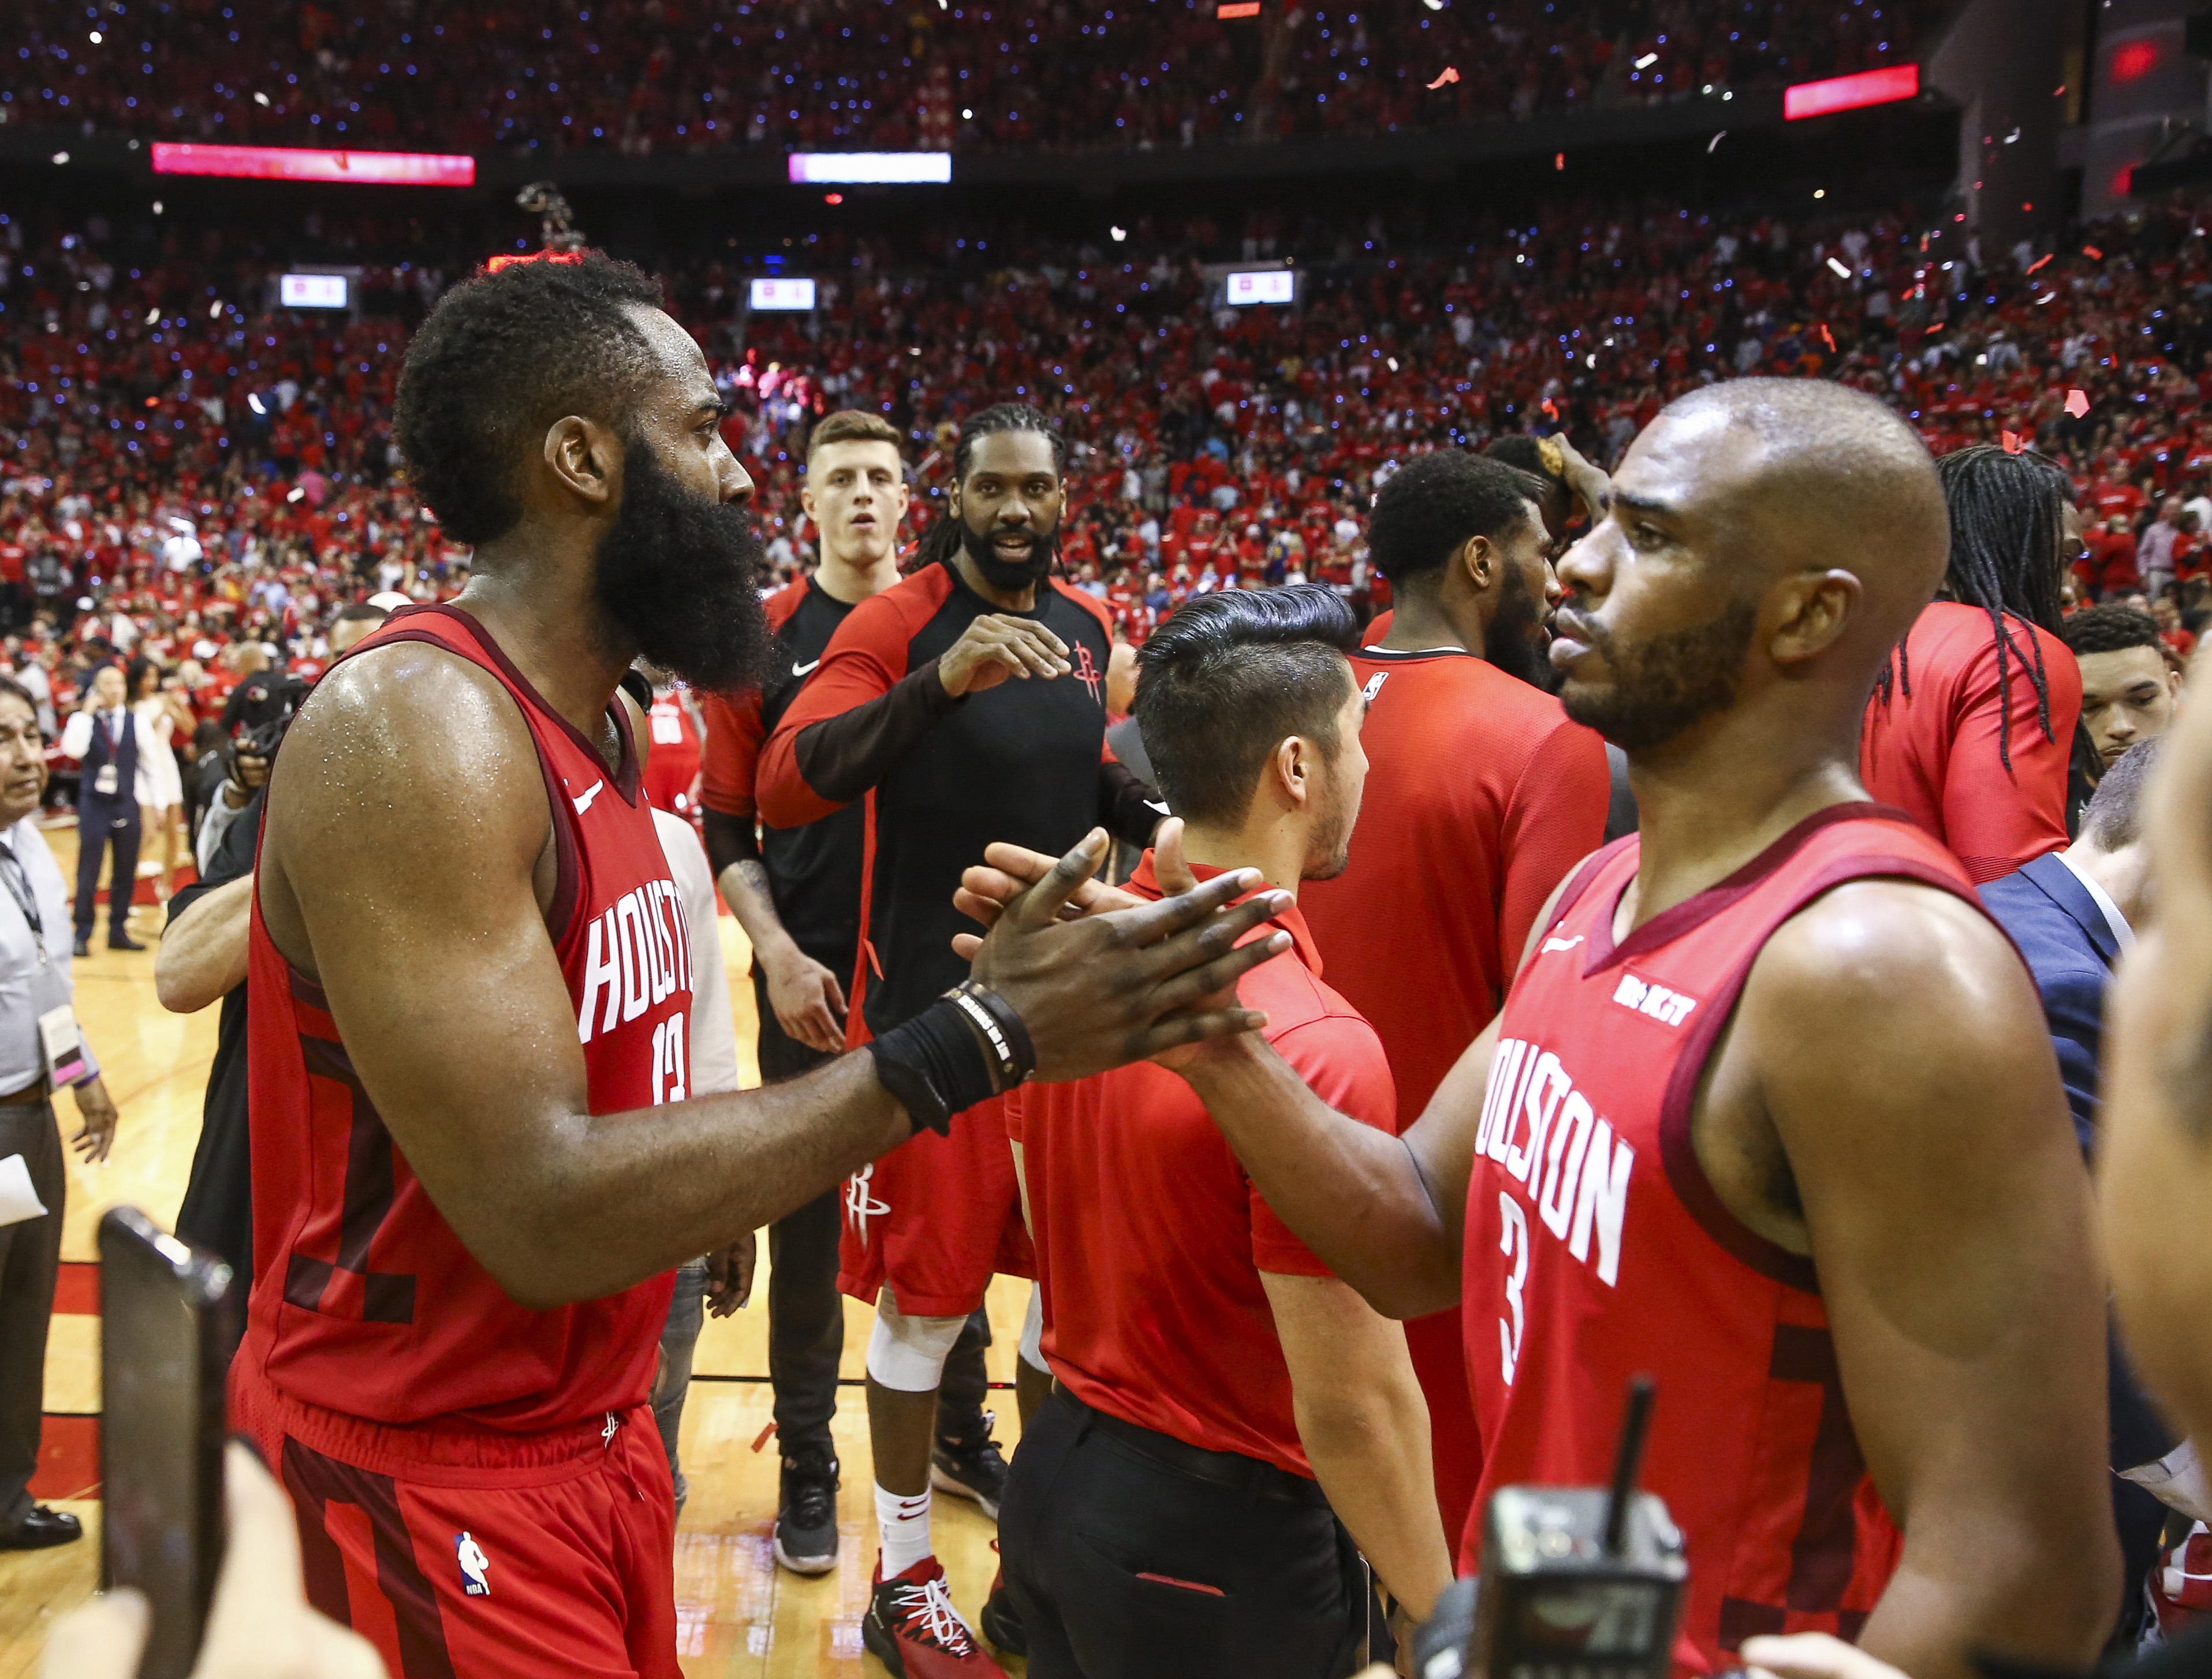 Details from infamous Chris Paul, James Harden spat are finally revealed